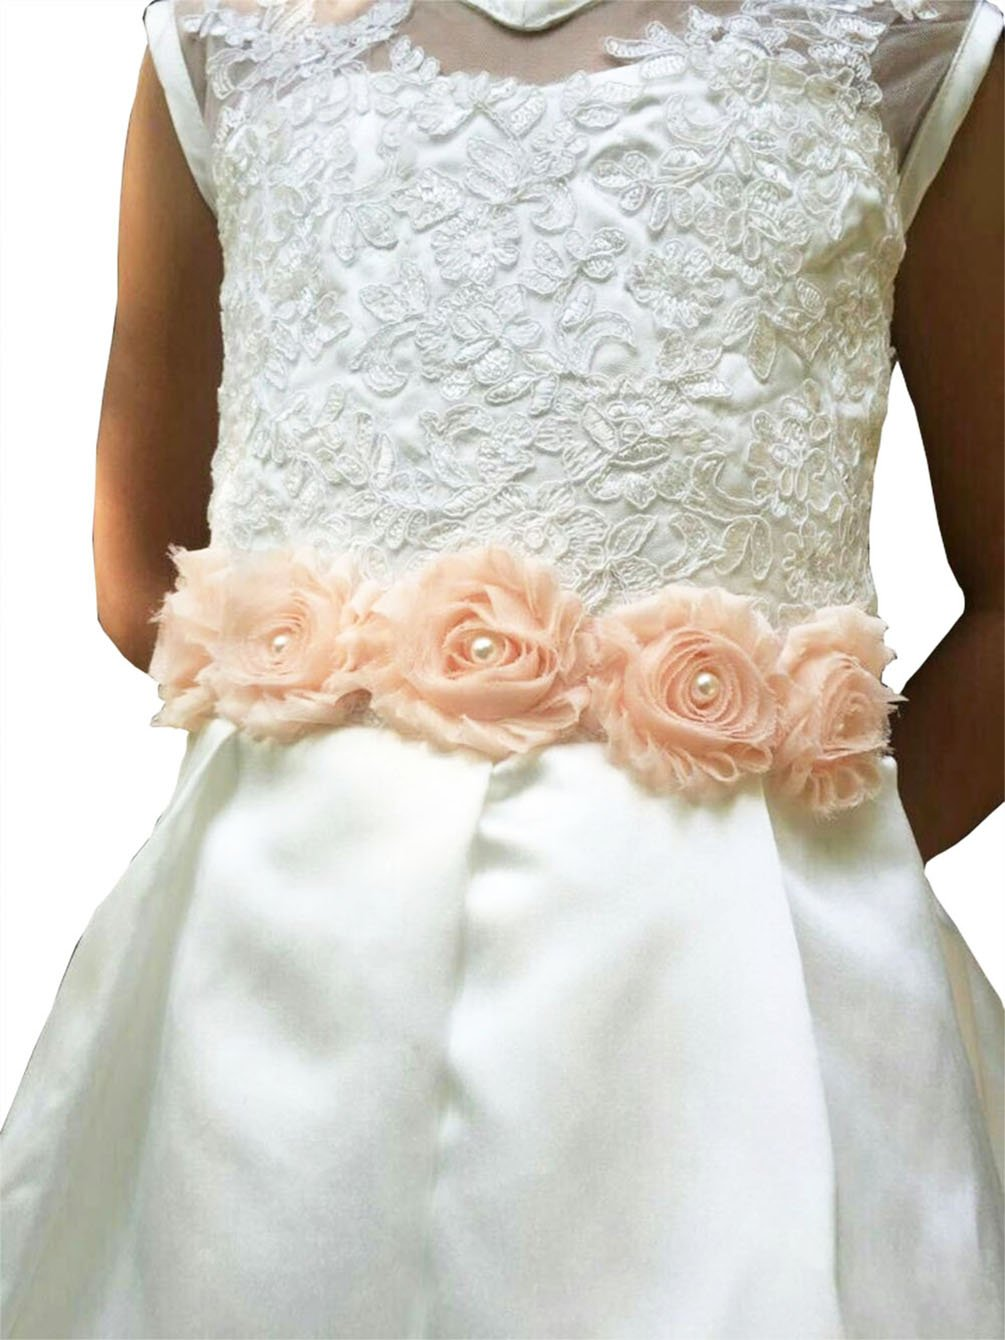 Lemandy Vintage Chiffon Flower and Pearls Flowergirls Sash for Pageant Prom Wedding in 10 Colors (Blush)